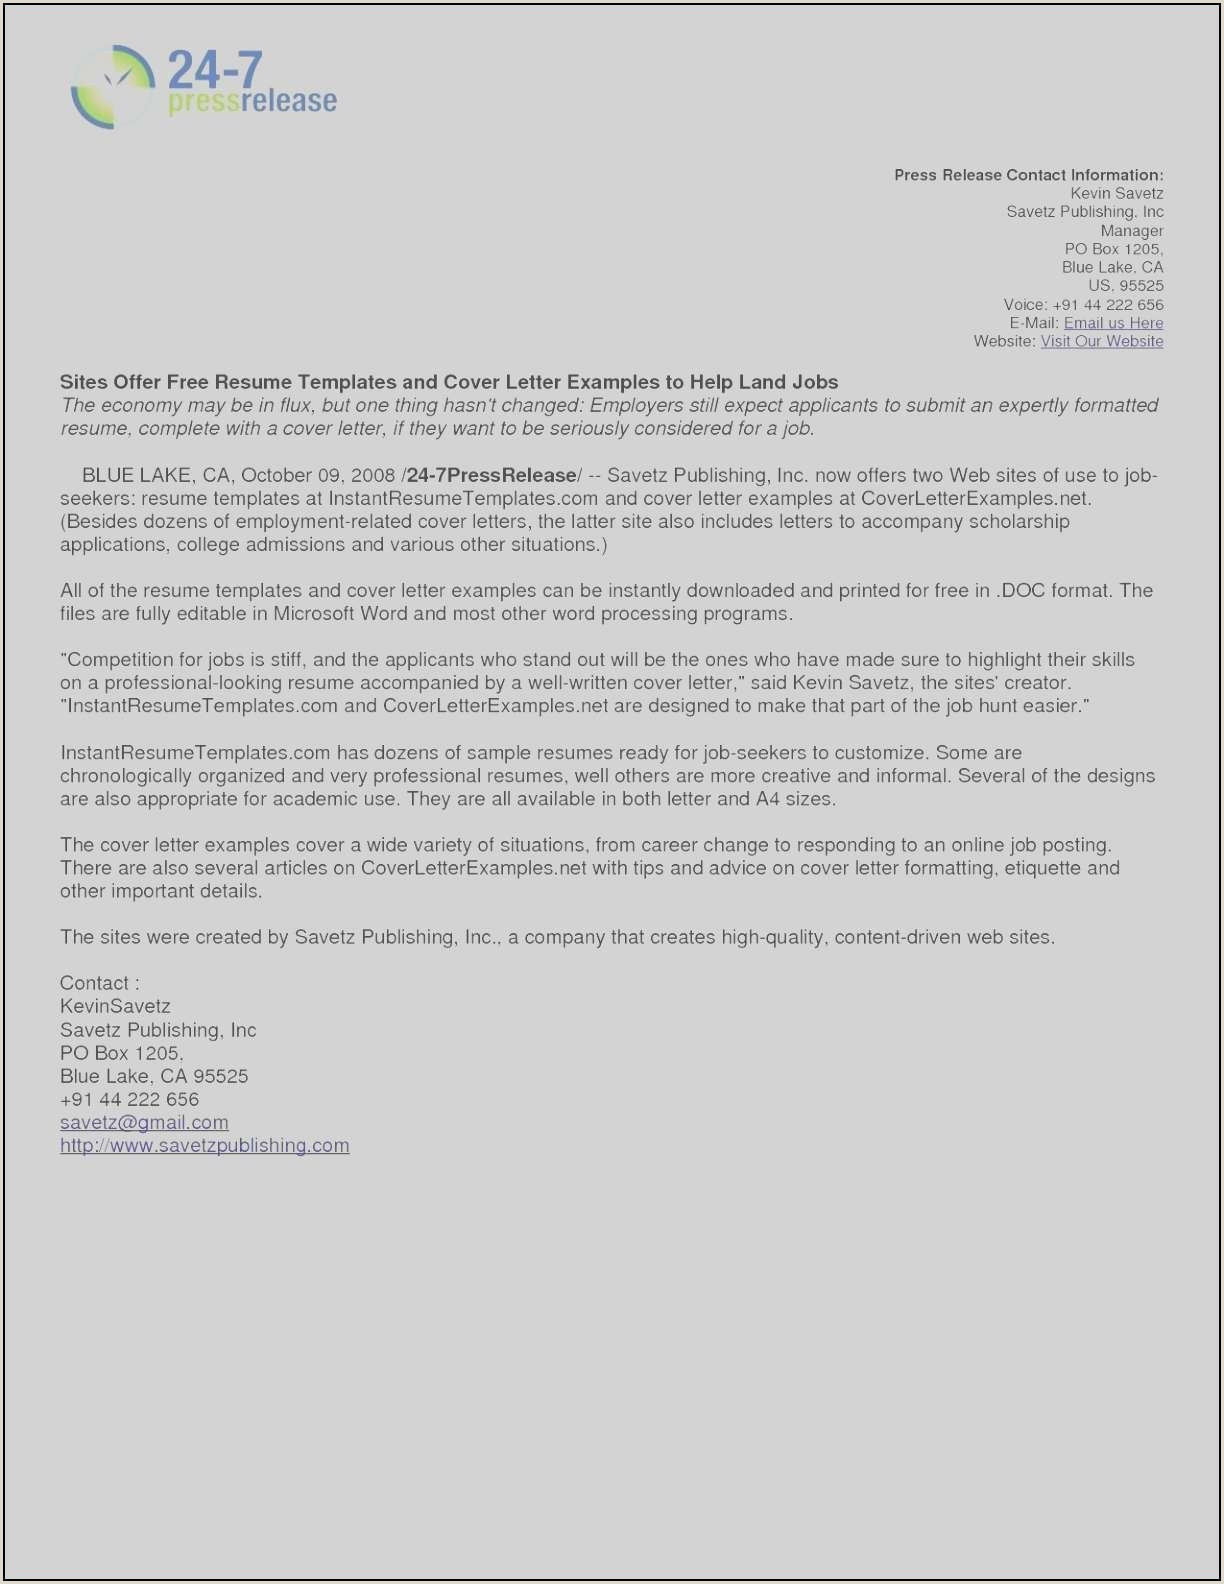 Direct Request Letter Example New Example Job Application Letter